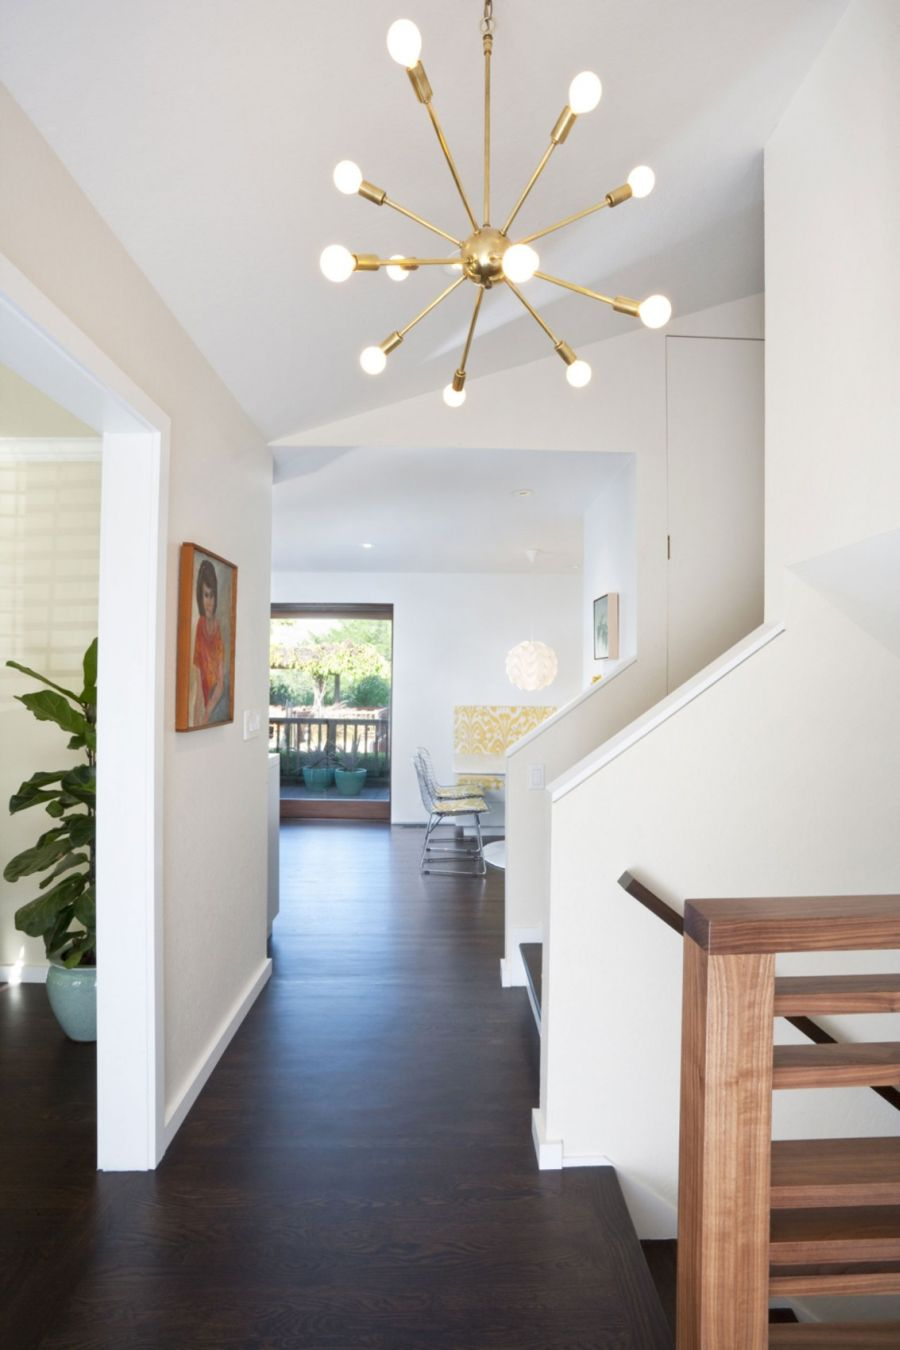 Remodeled Kitchen And Breezy Interiors Light Up The Moraga